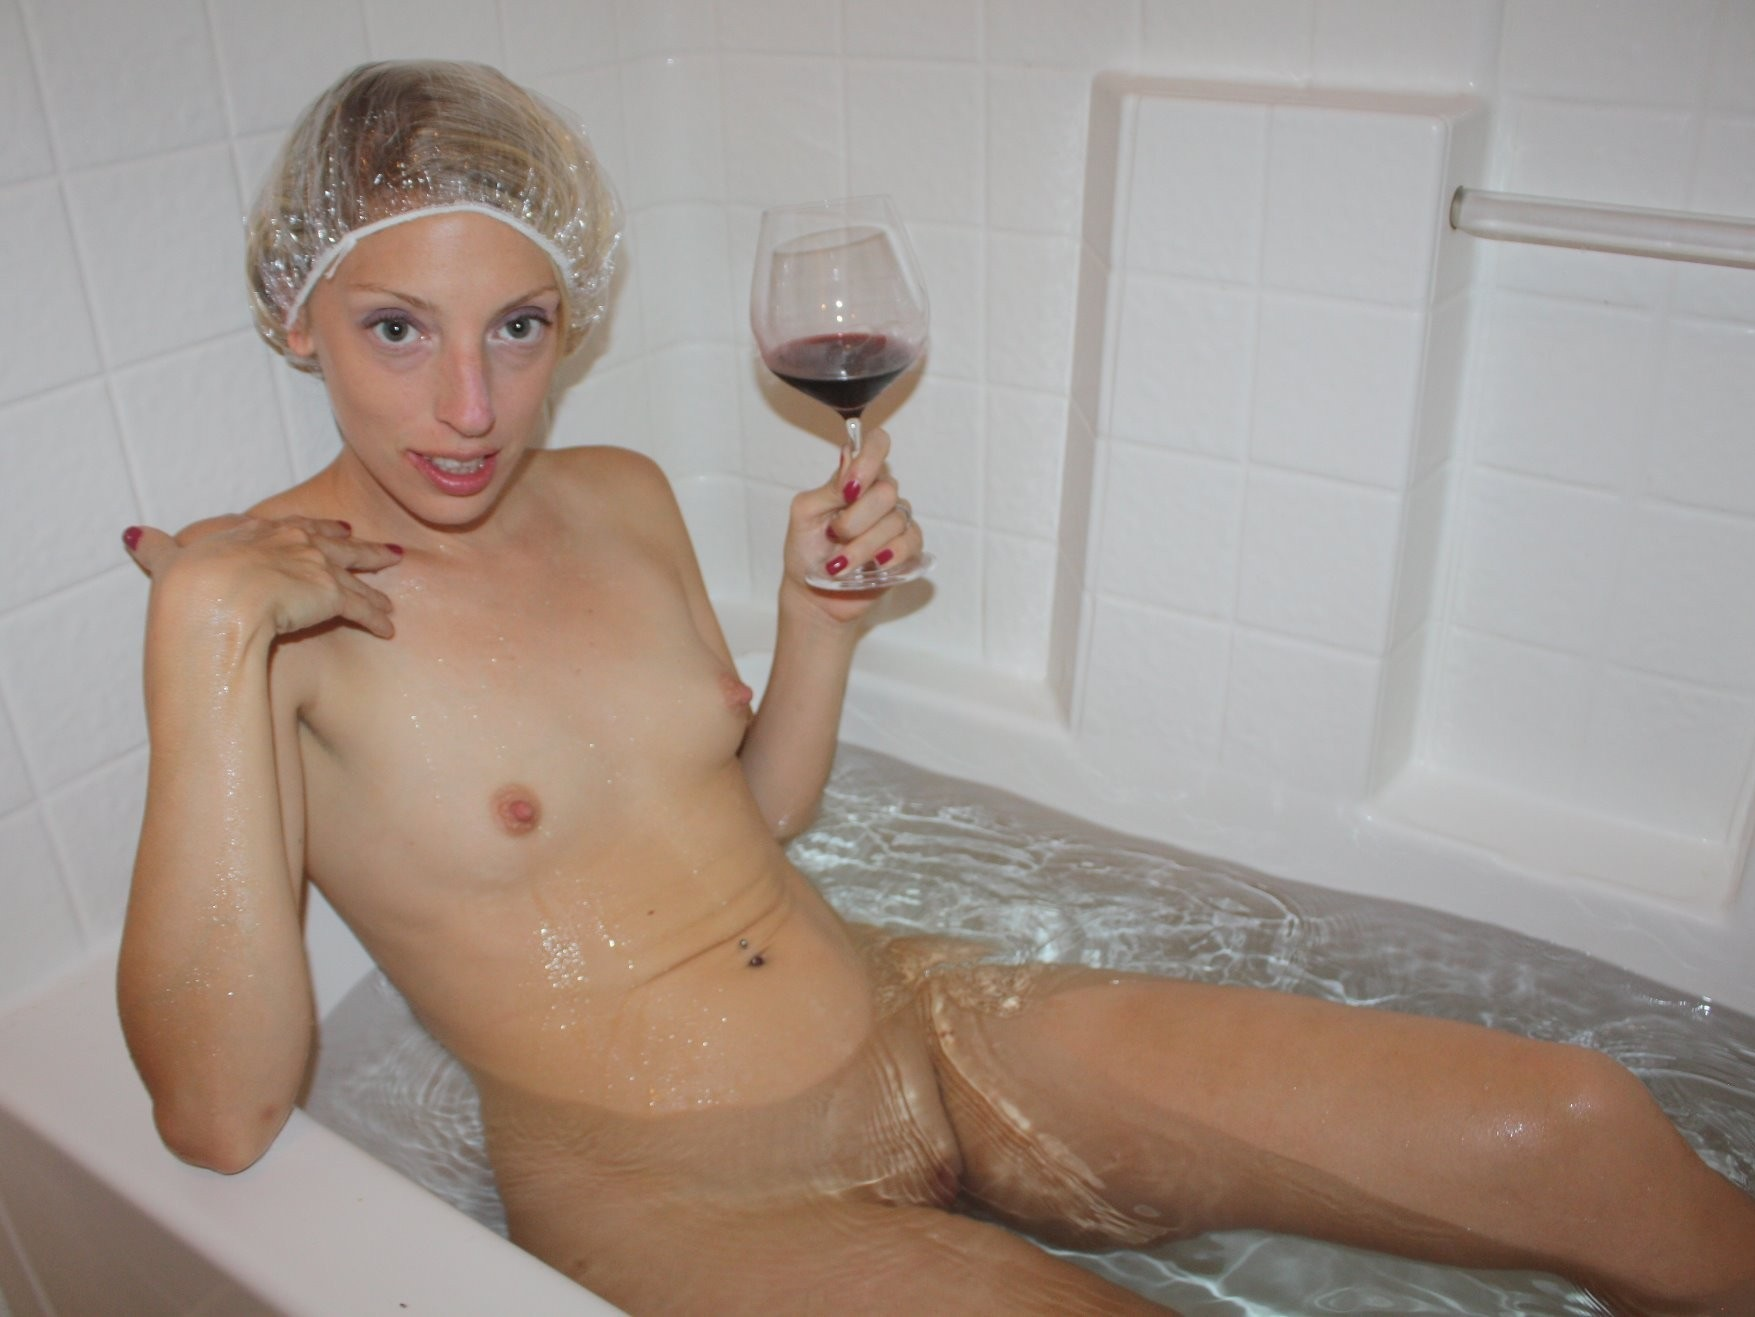 Wife in tub nude